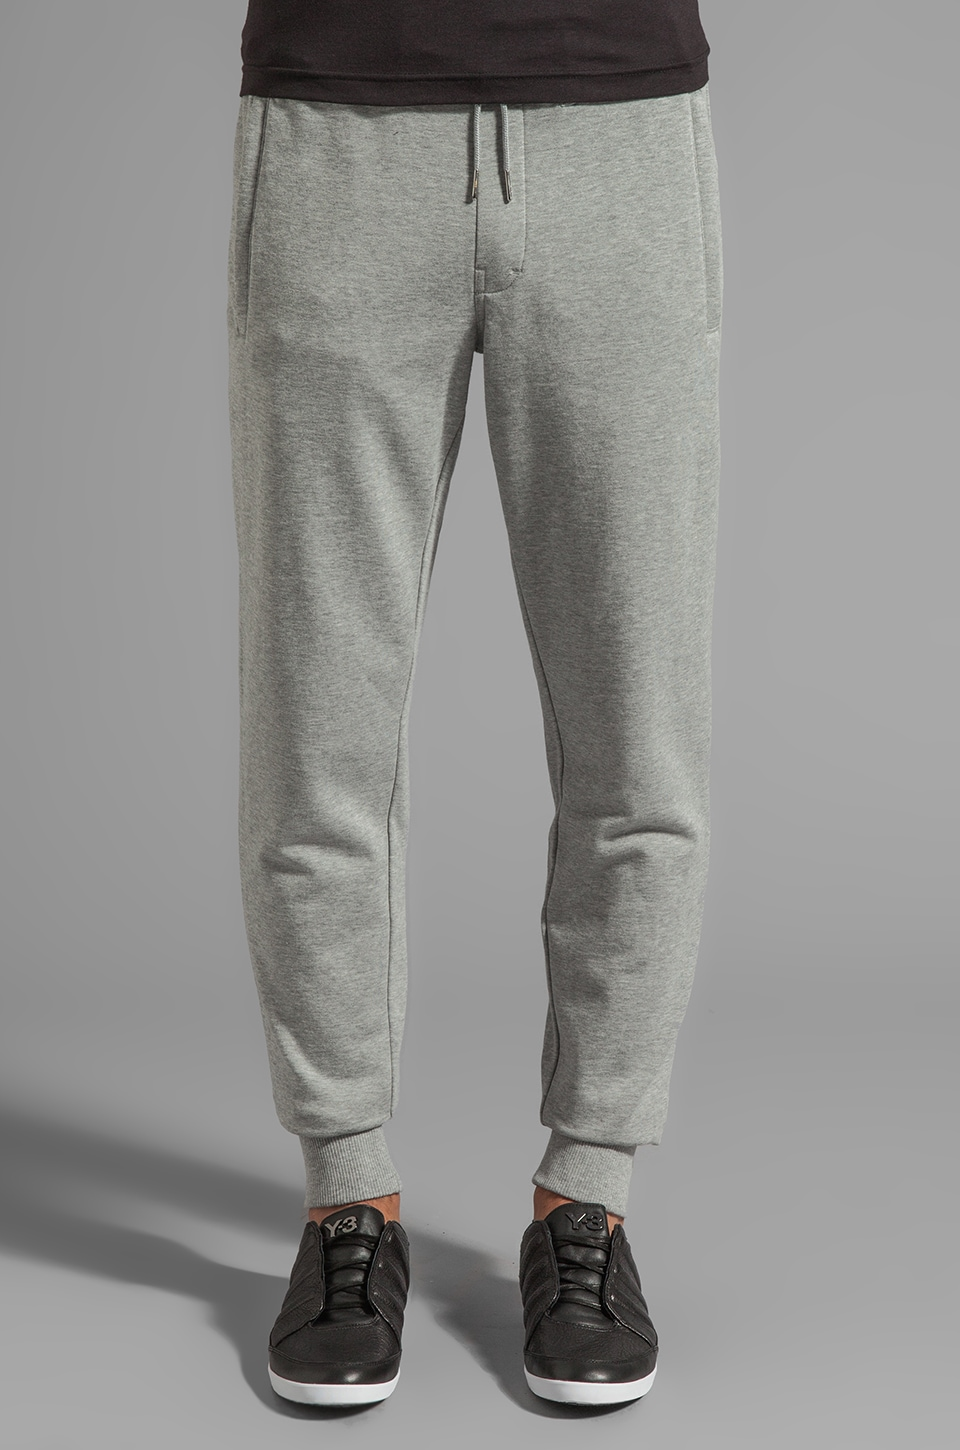 Y-3 Yohji Yamamoto Sweatpant in Medium Grey Heather